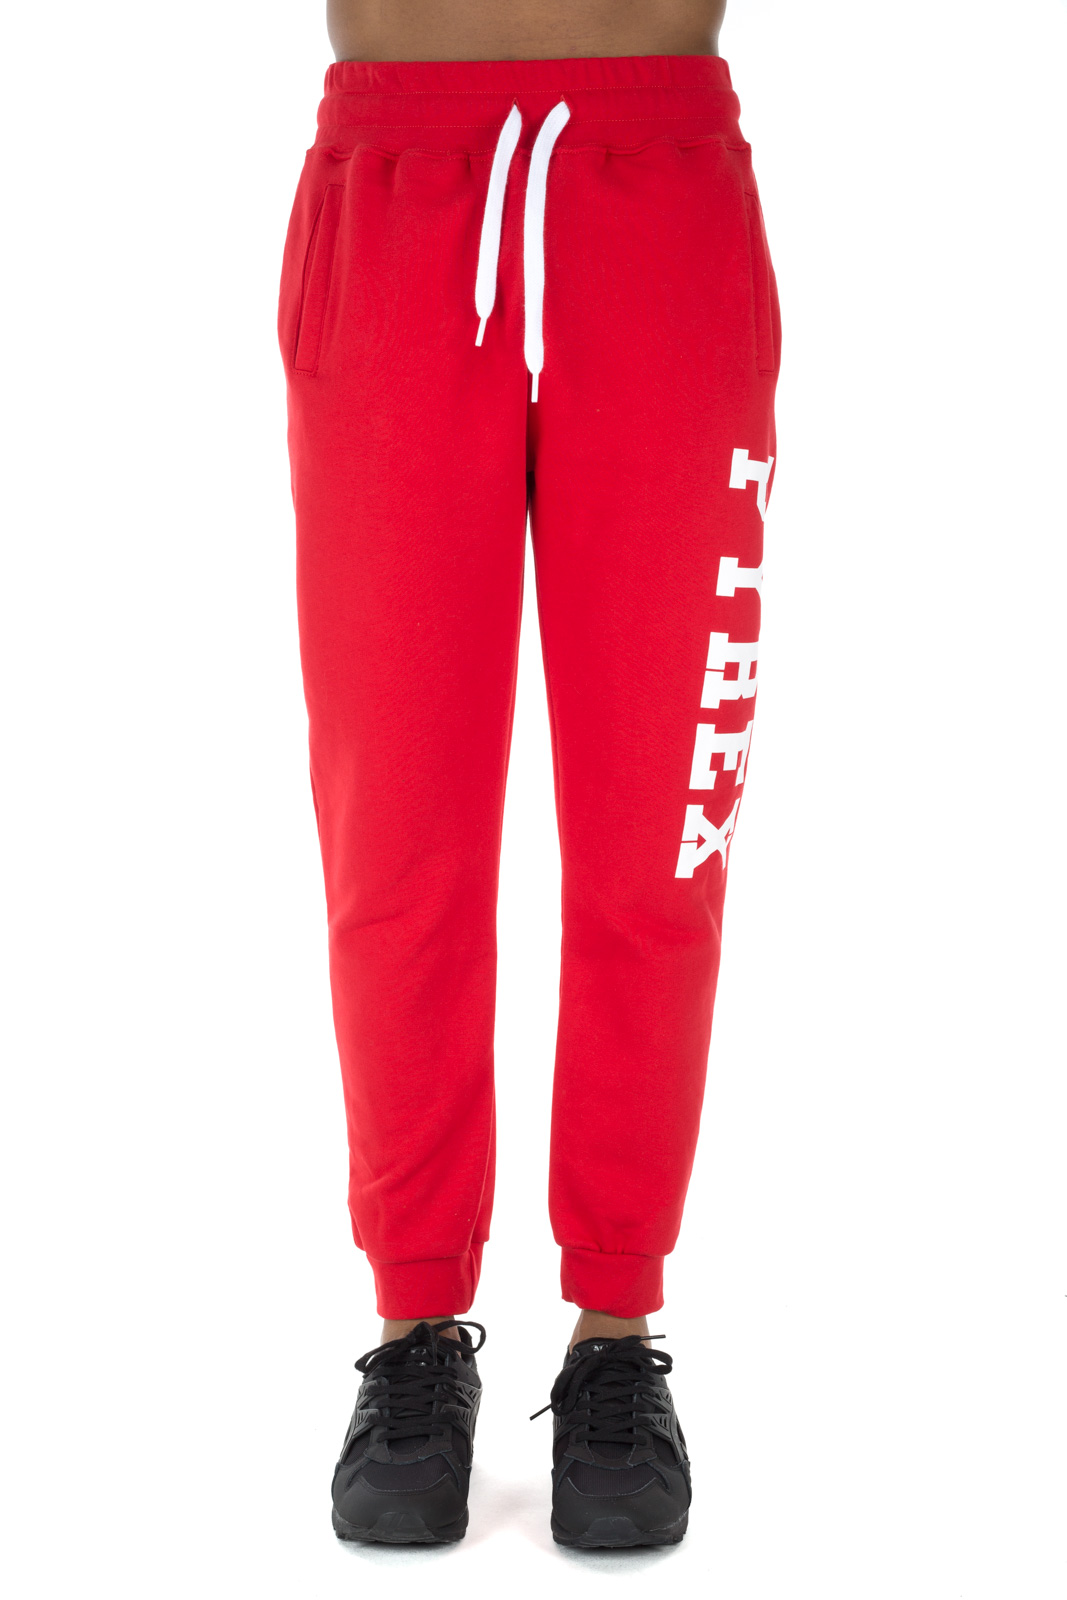 Pyrex - Trousers Unisex Red Regular Suit